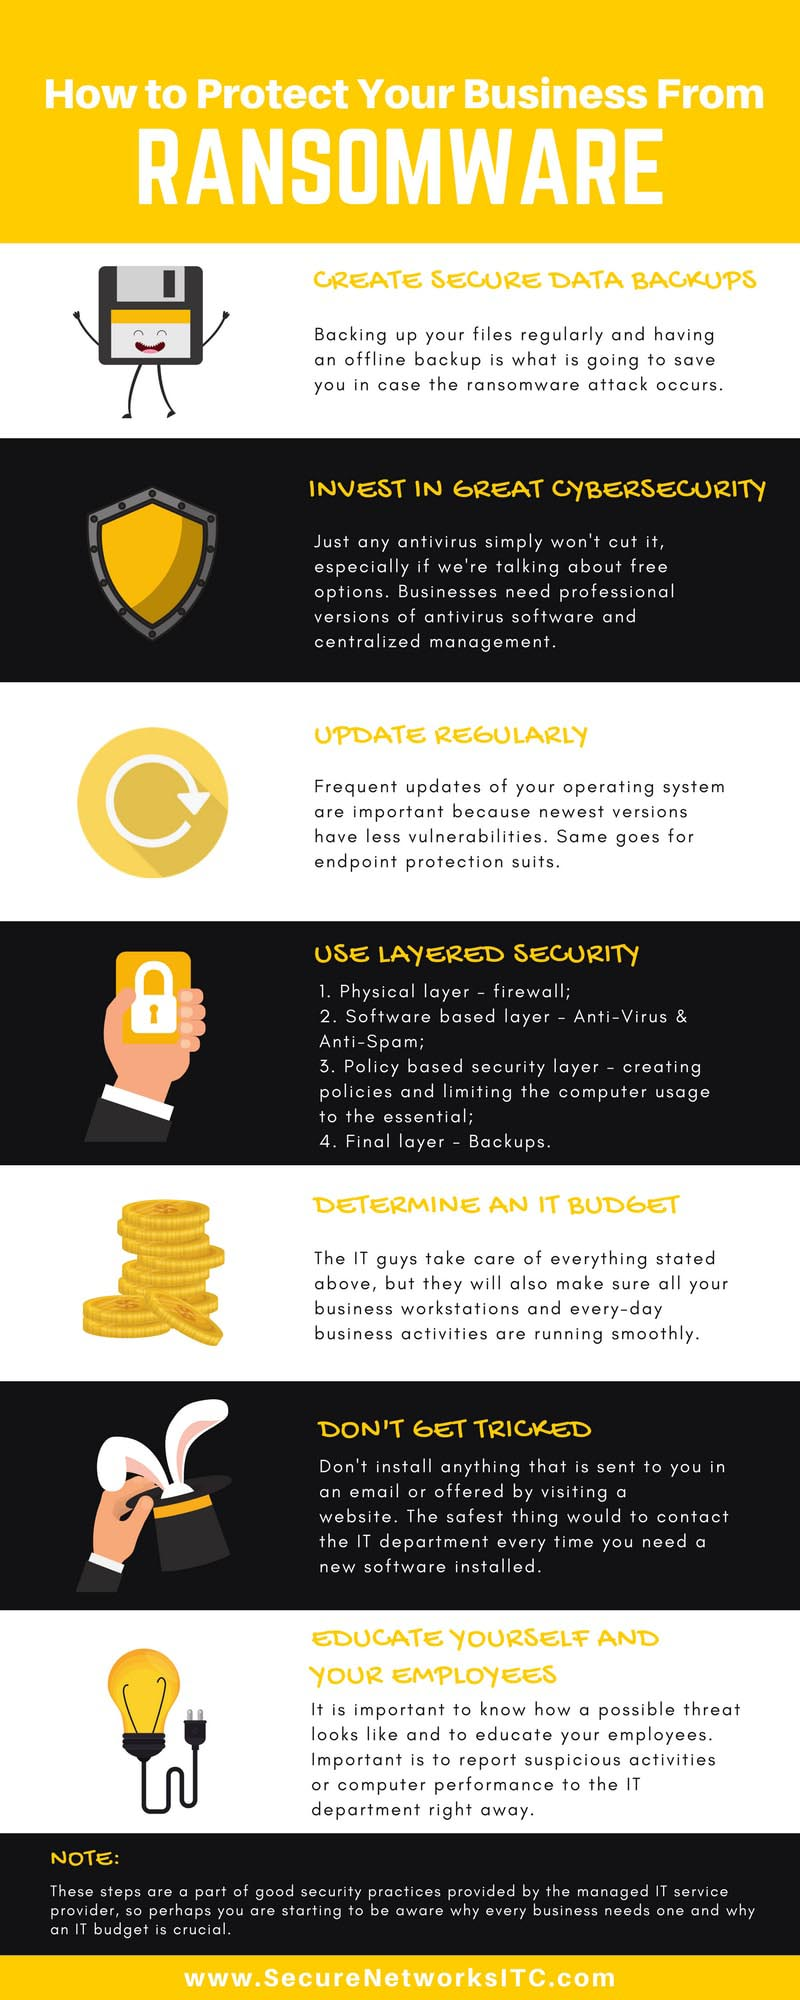 How-to-protect-Your-Business-from-Ransomware-Infographic